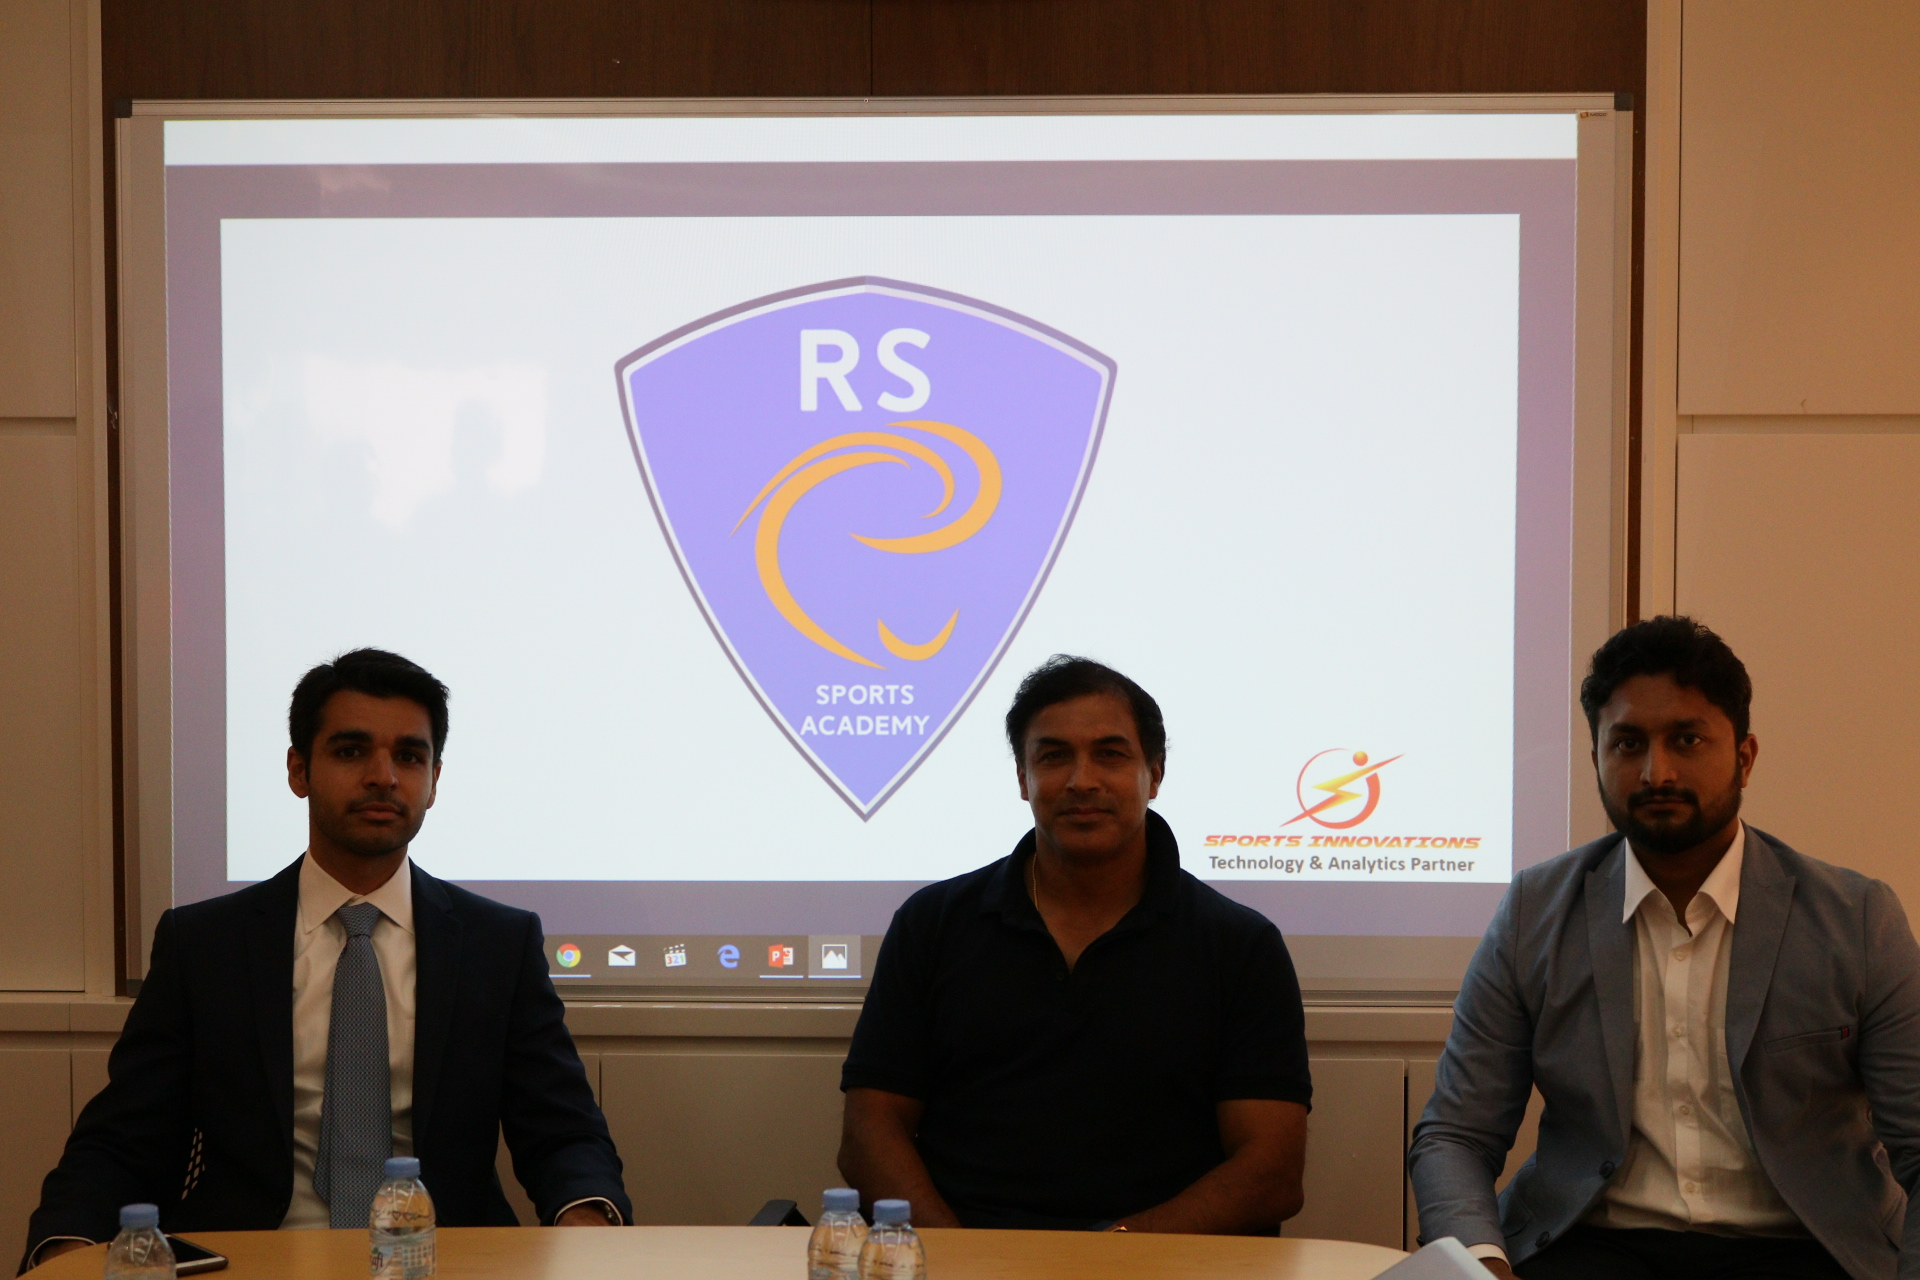 Robin Singh to launch sports academy in Dubai